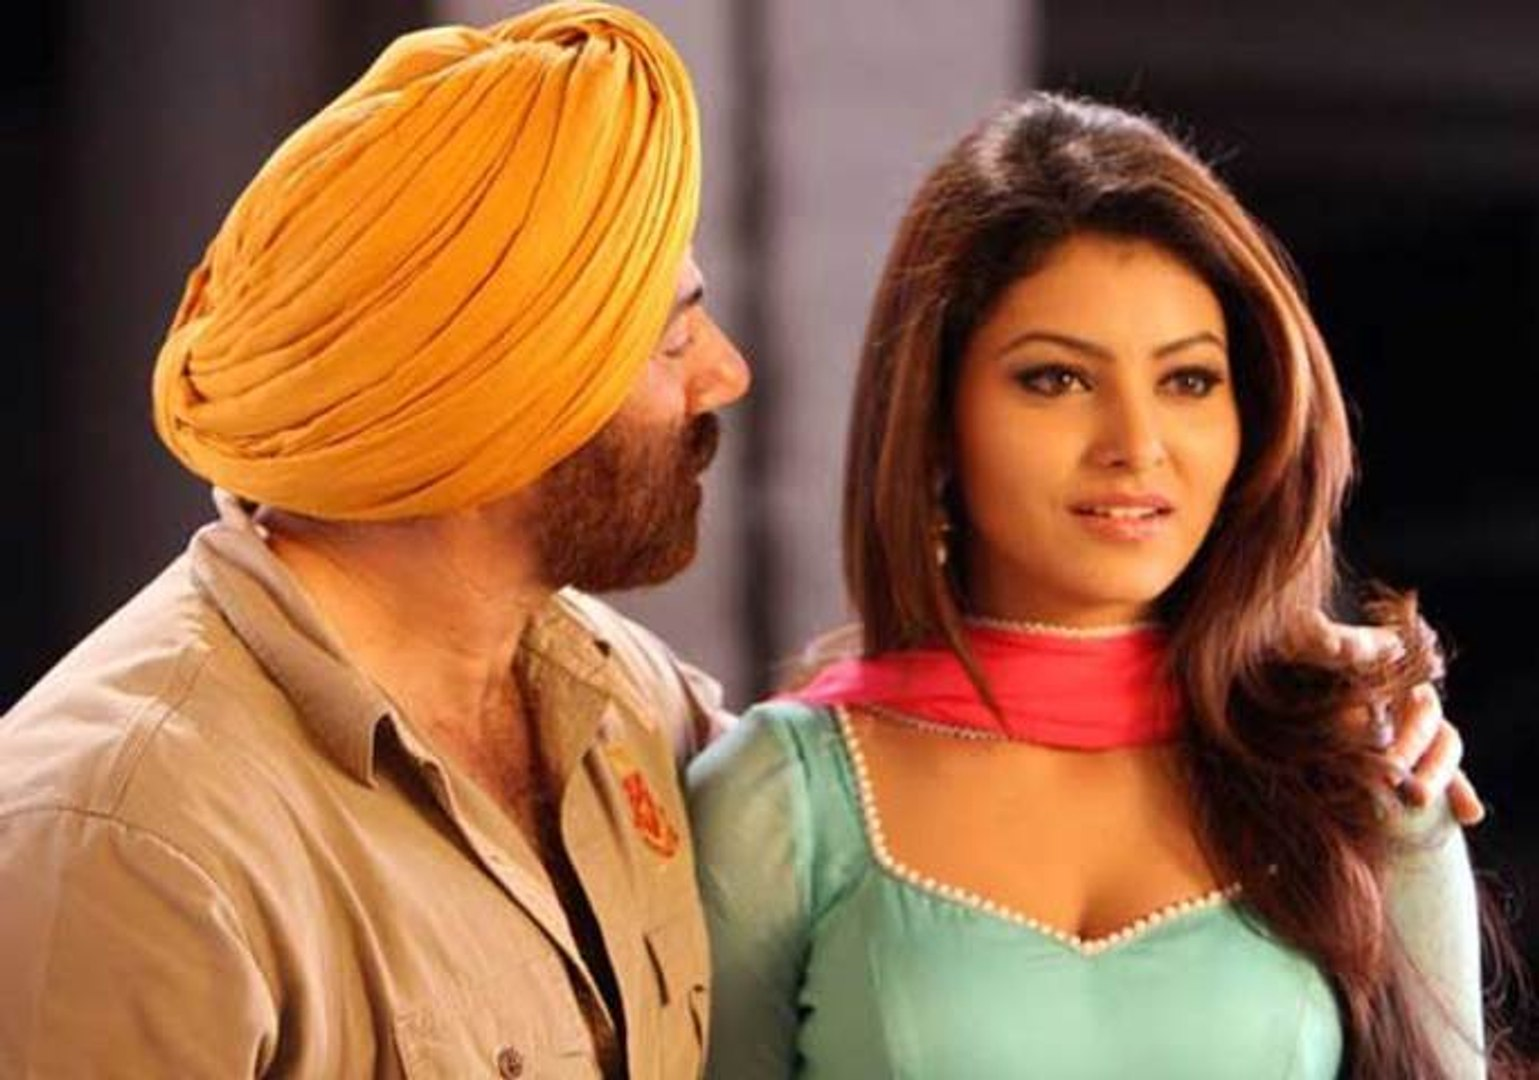 Singh Saab The Great   Official Trailer Review   Sunny Deol, Amrita Rao,  Urvashi Rautela - video Dailymotion